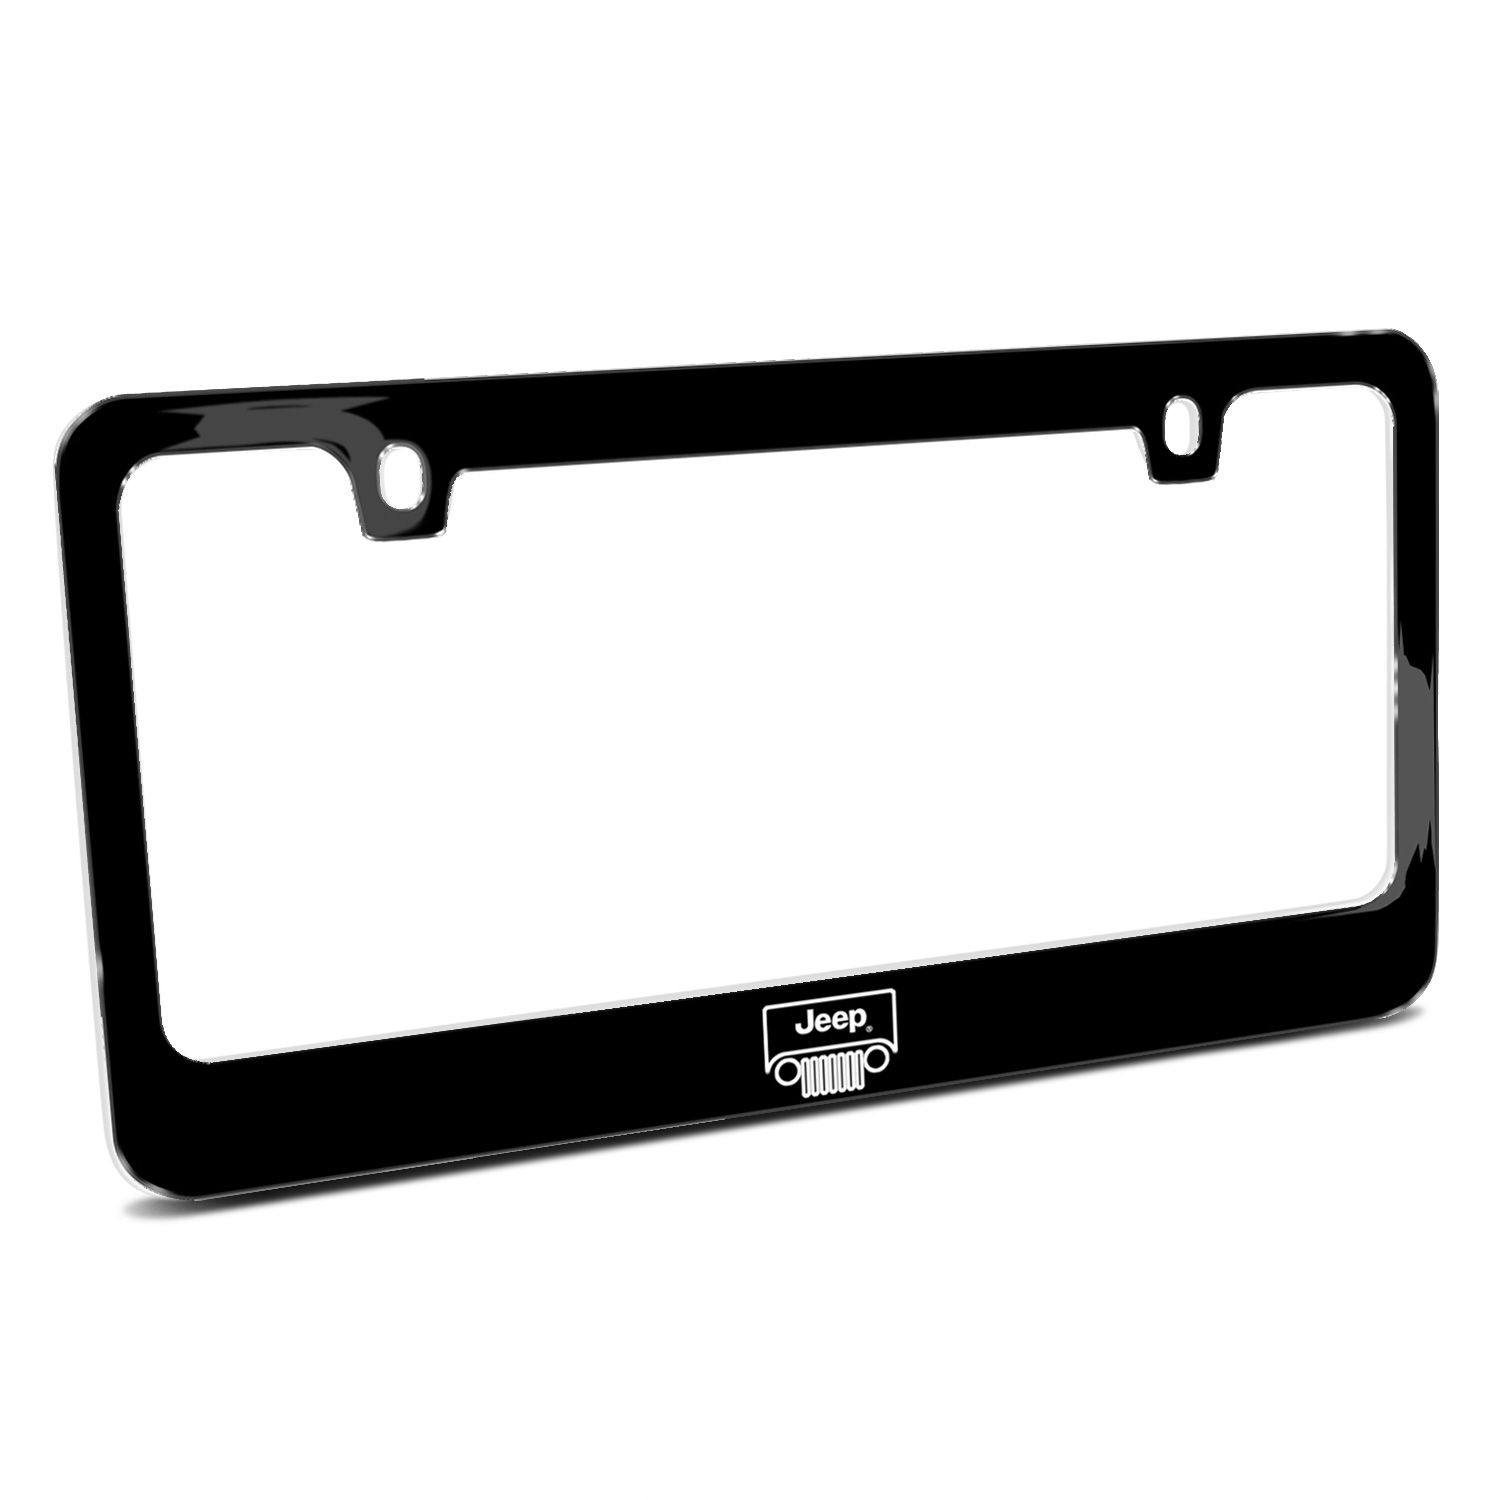 Jeep Grill Outline Black Metal License Plate Frame